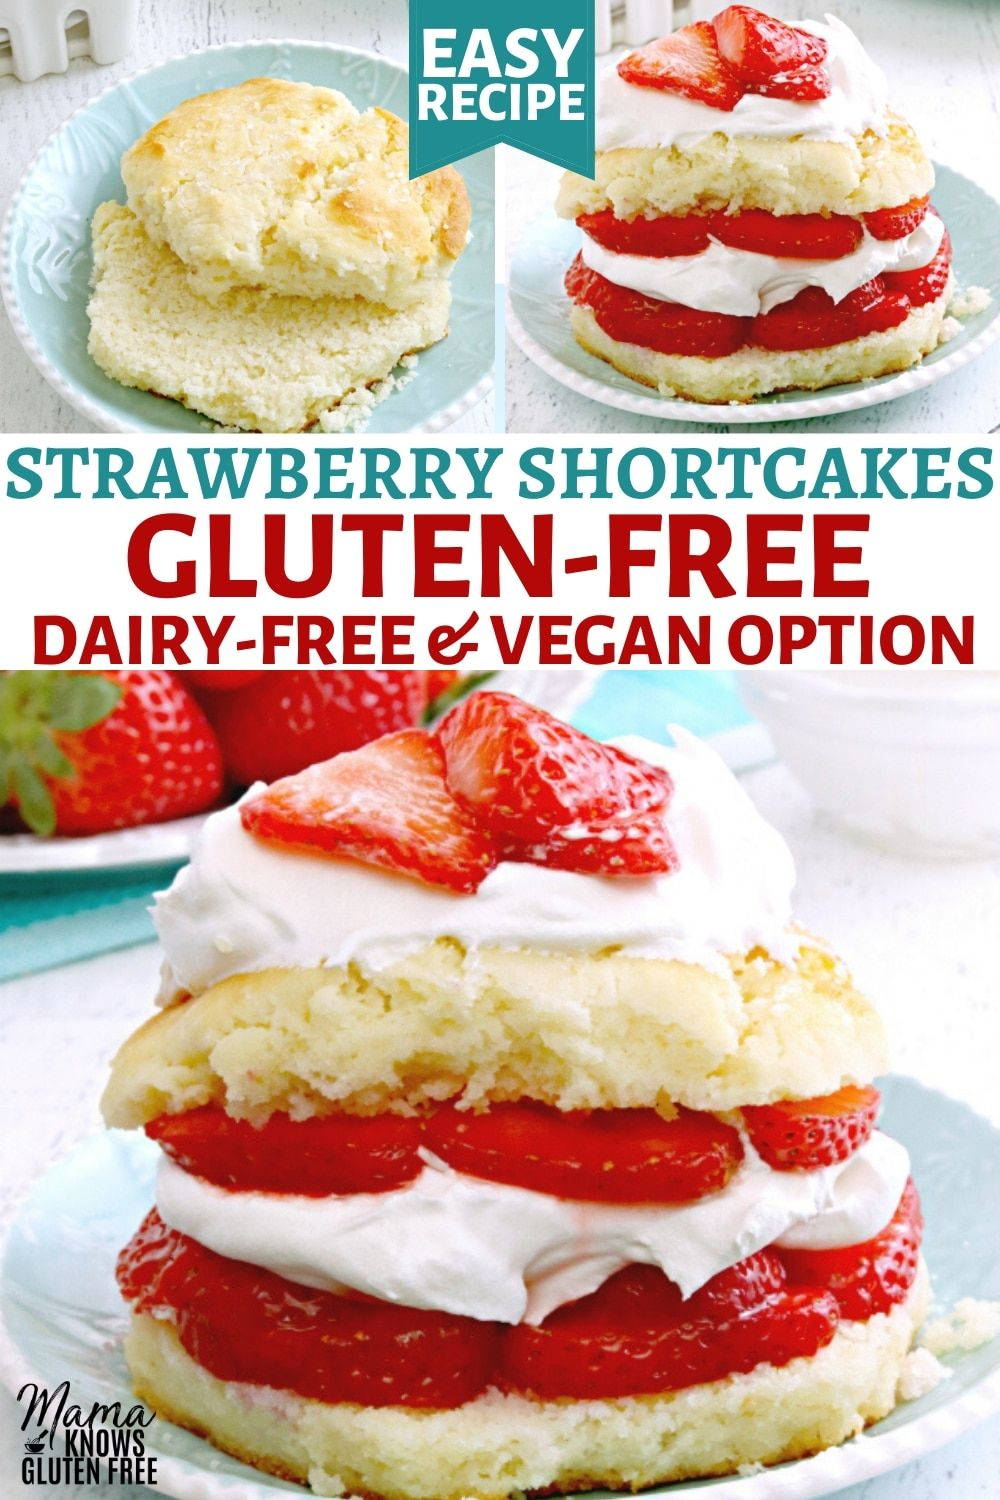 An easy recipe for Gluten-Free Strawberry Shortcake. Fluffy and flaky sweet biscuits topped with strawberries and whipped cream. This gluten-free dessert recipe also has a dairy-free and vegan option. #glutenfreerecipes #dairyfree #vegan